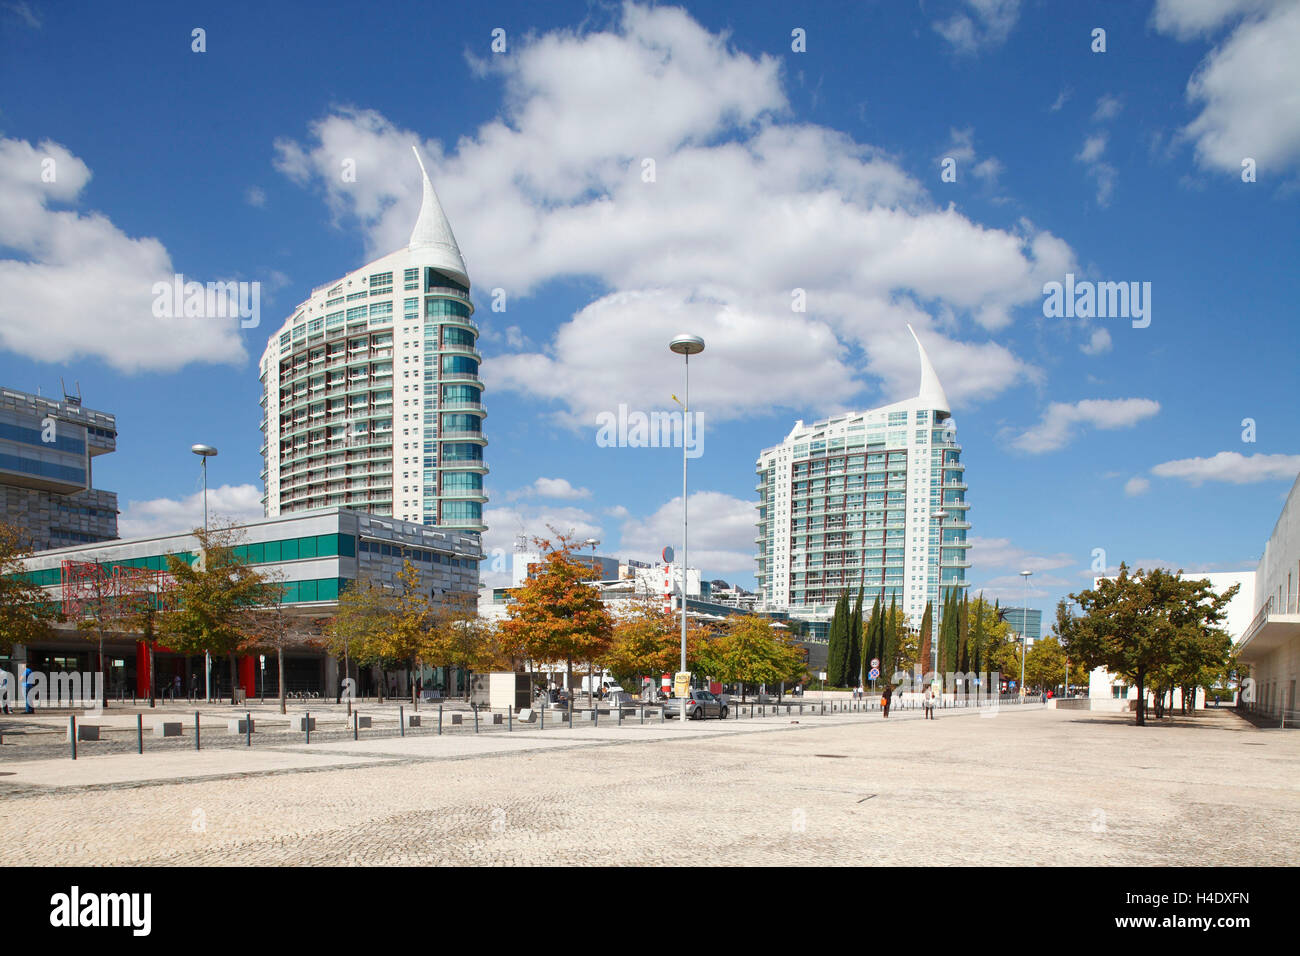 Modern architecture, Parque the Naçoes, park the nations, Lisbon, Portugal Stock Photo